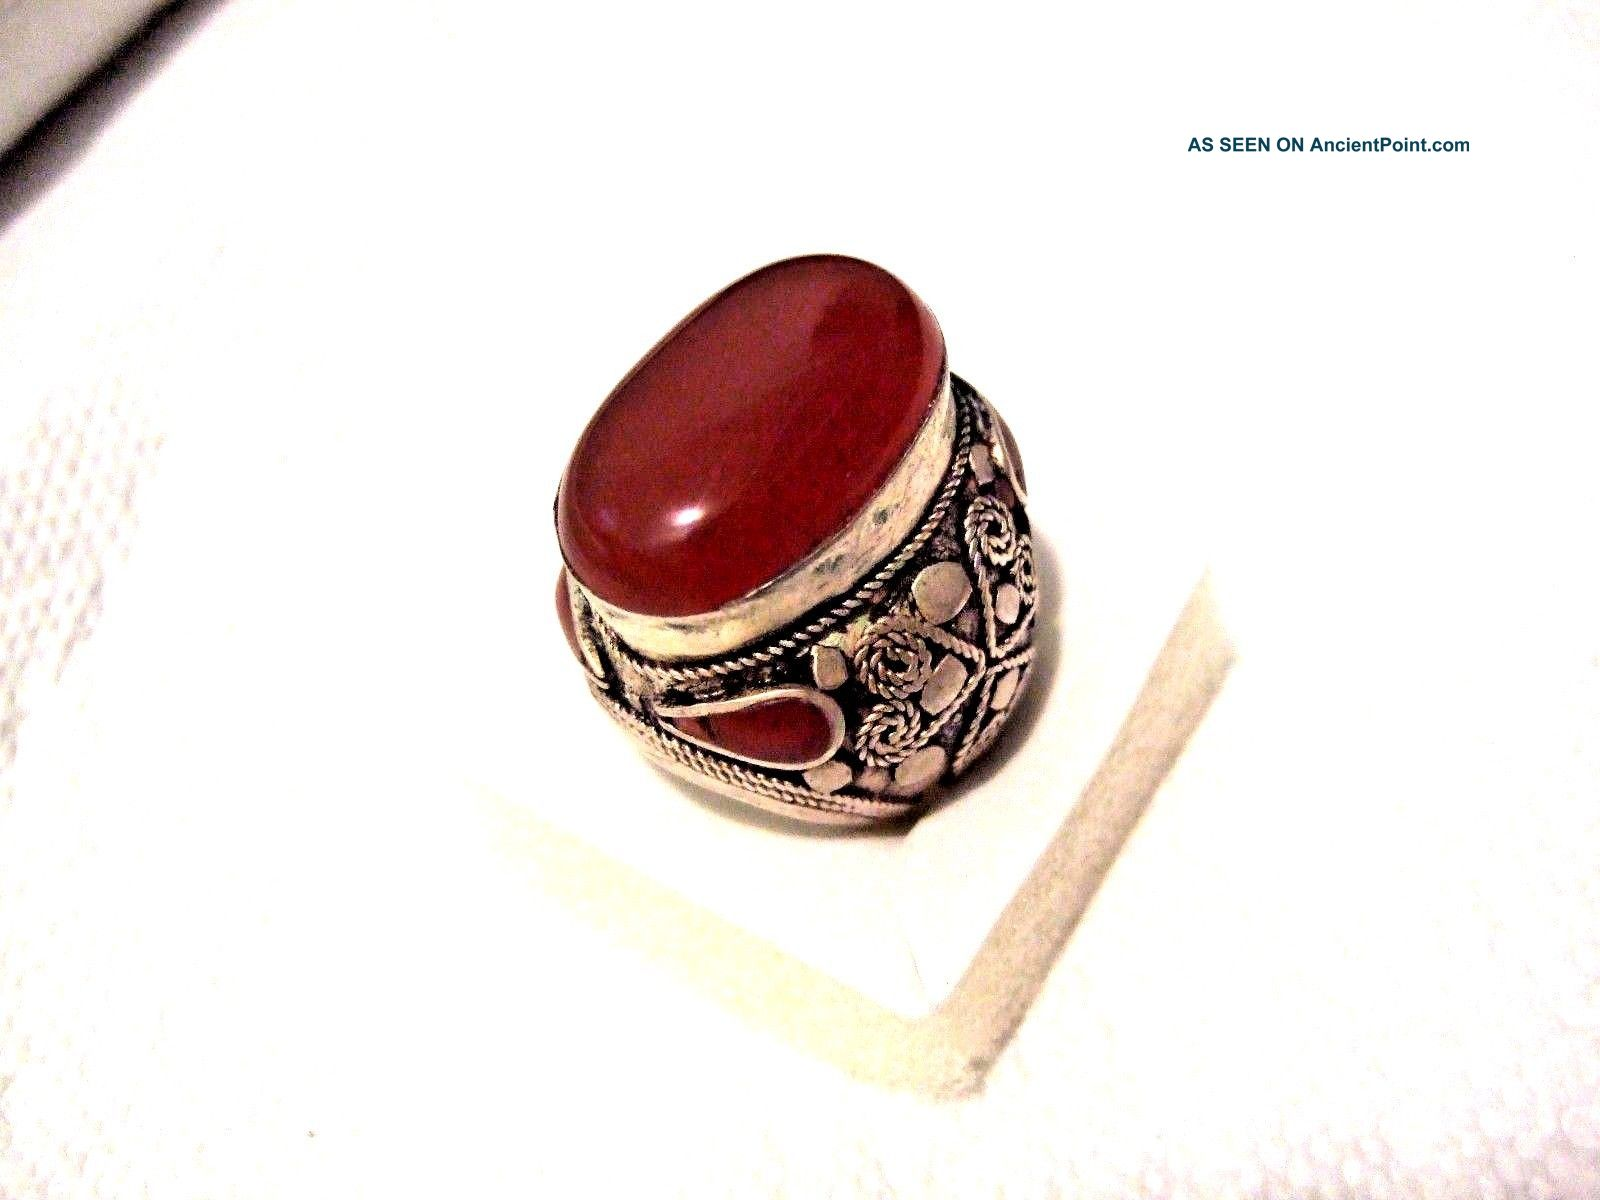 Vintage Islamic Middle Eastern Tribal Ethnic Big Red Agate Ring خاتم اسلامي Islamic photo